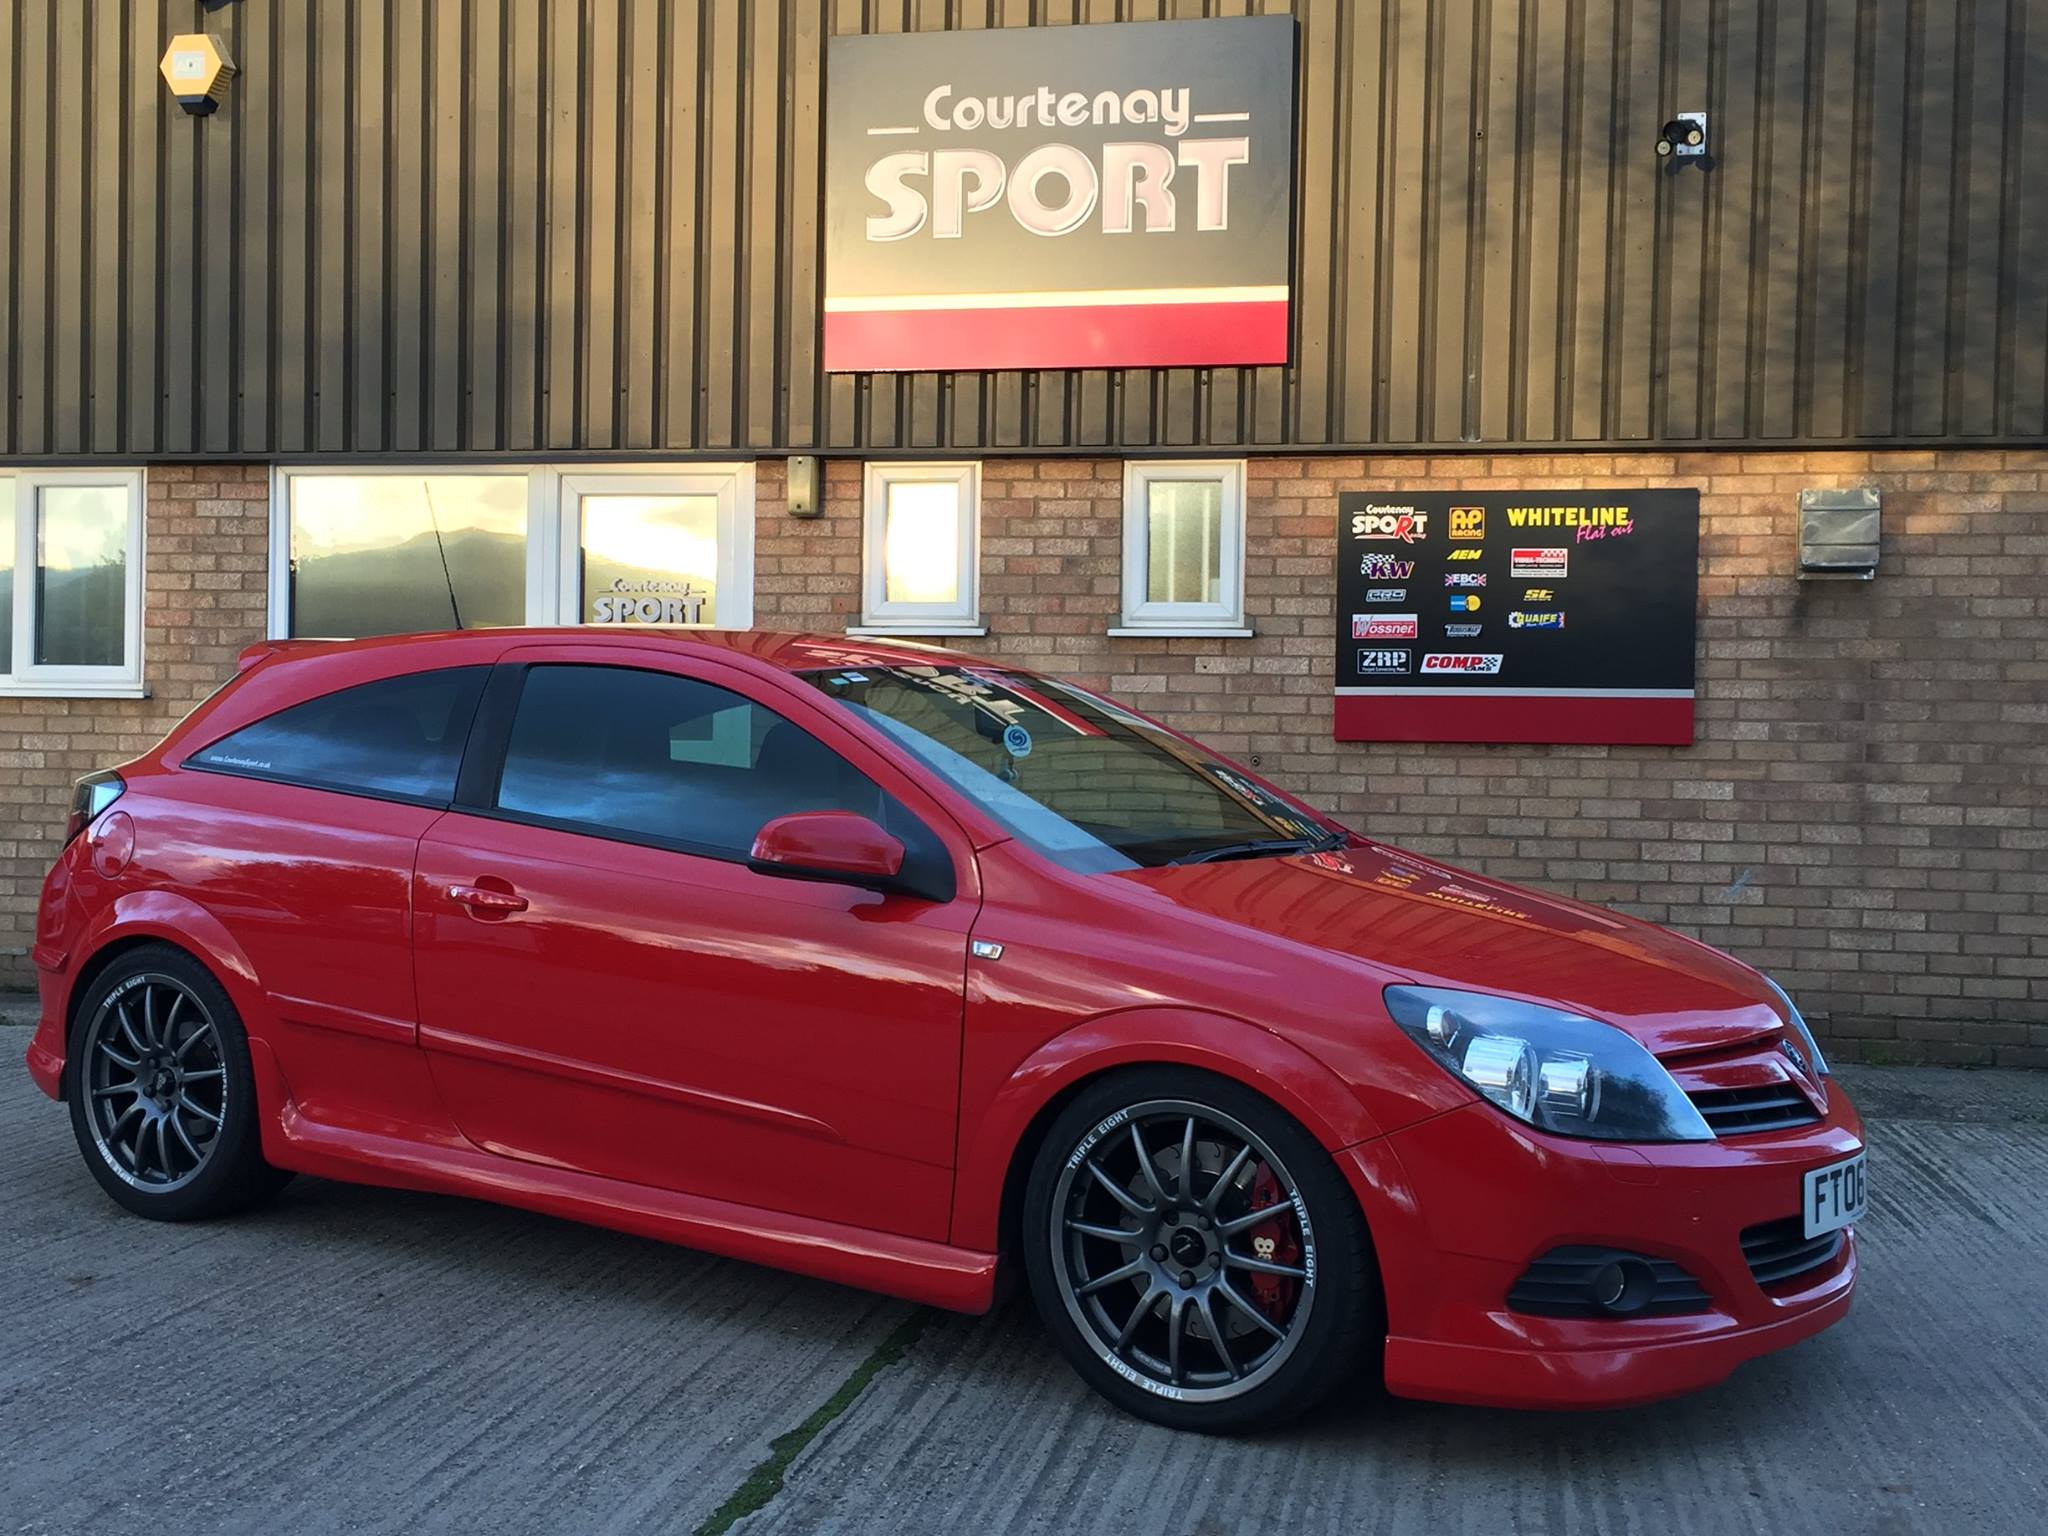 The Courtenay Sport Blog For Tuning Motorsport News Products Astra H Water In Fuse Box 888 Cdti